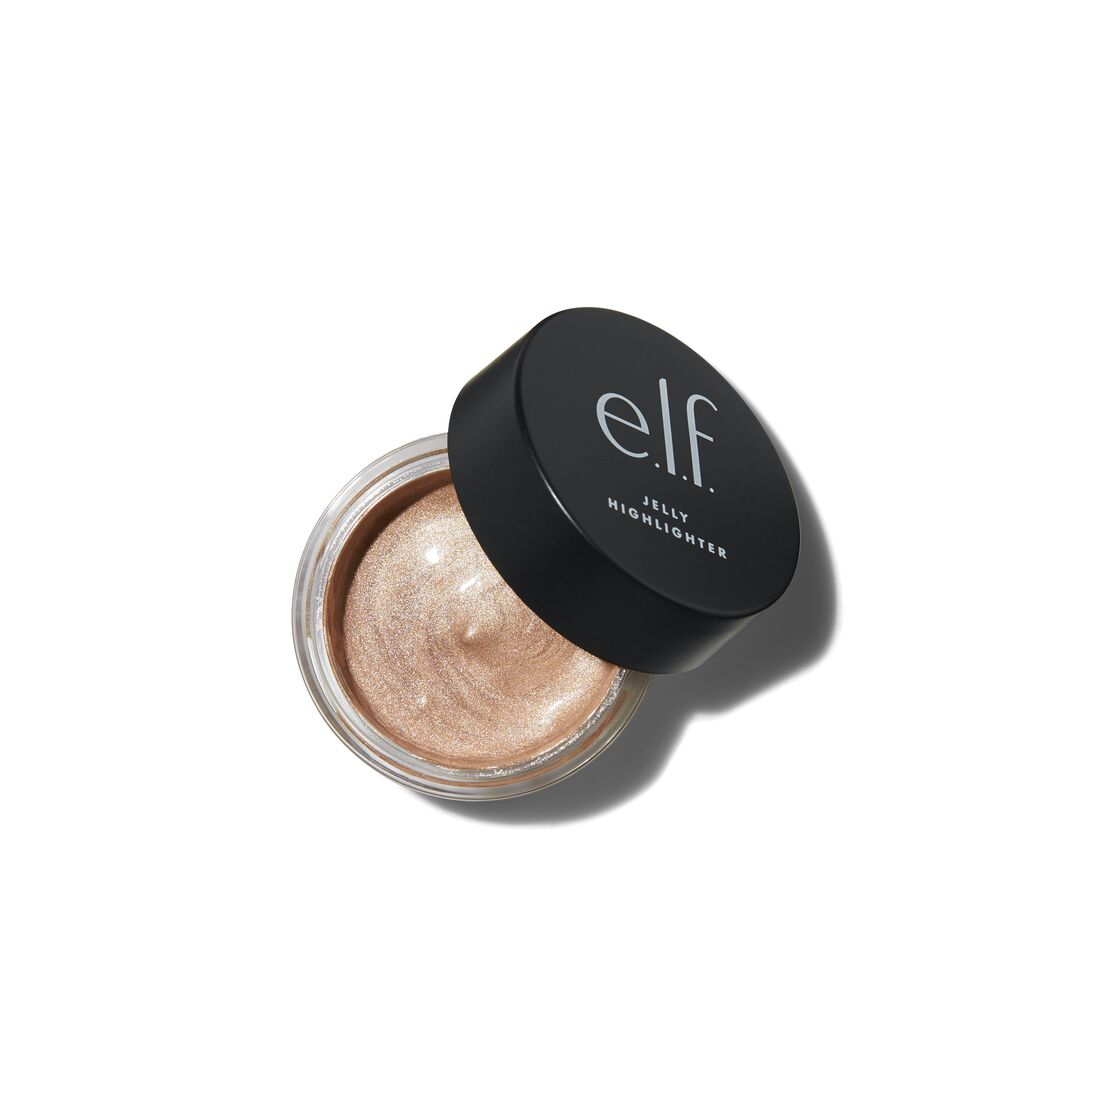 e.l.f. Jelly Highlighter | HODIVA SHOP